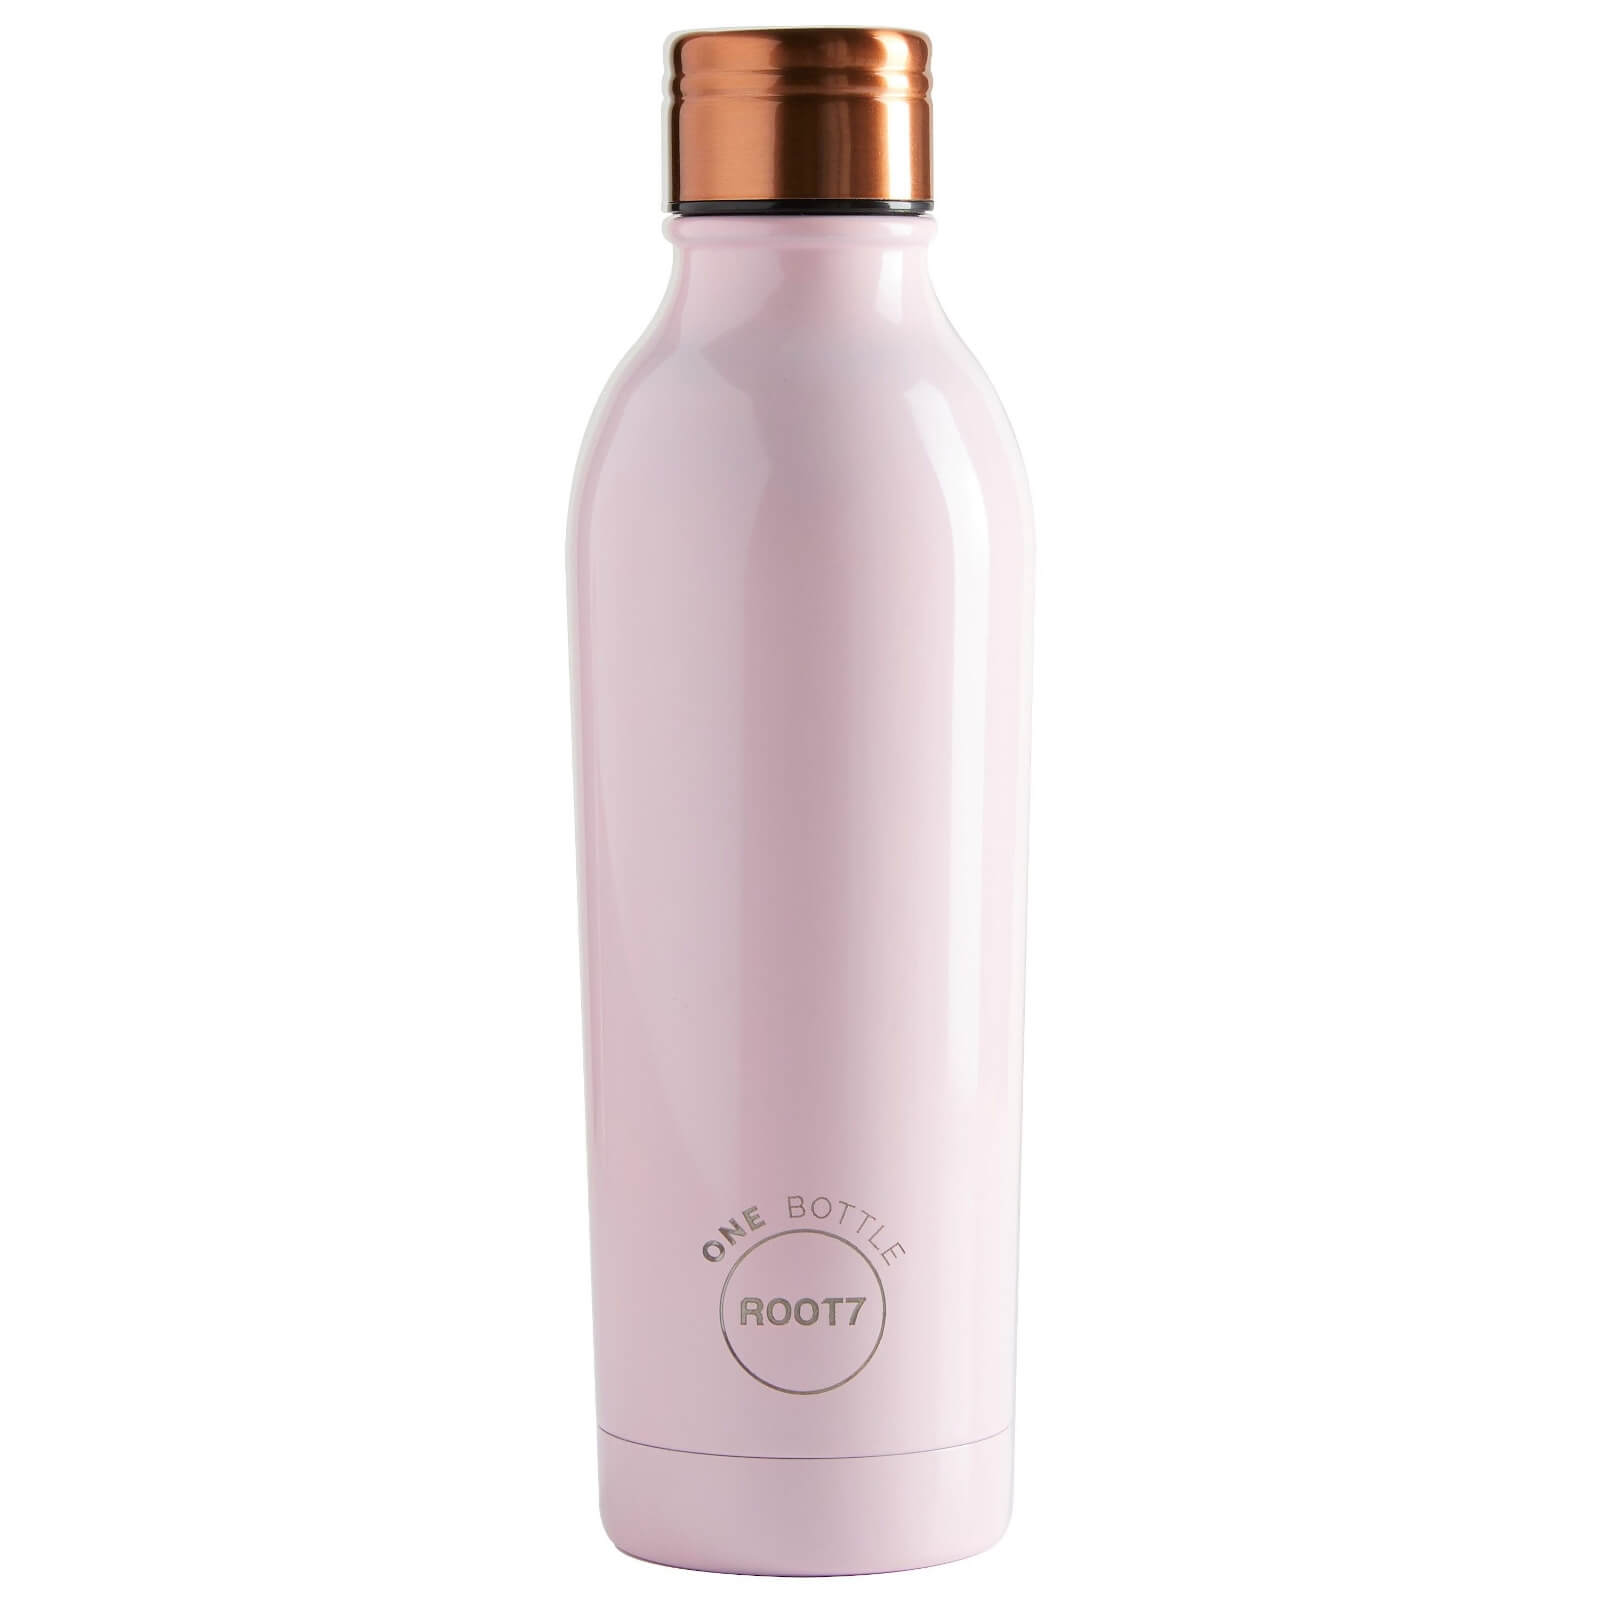 Image of One Bottle - Millennial Pink